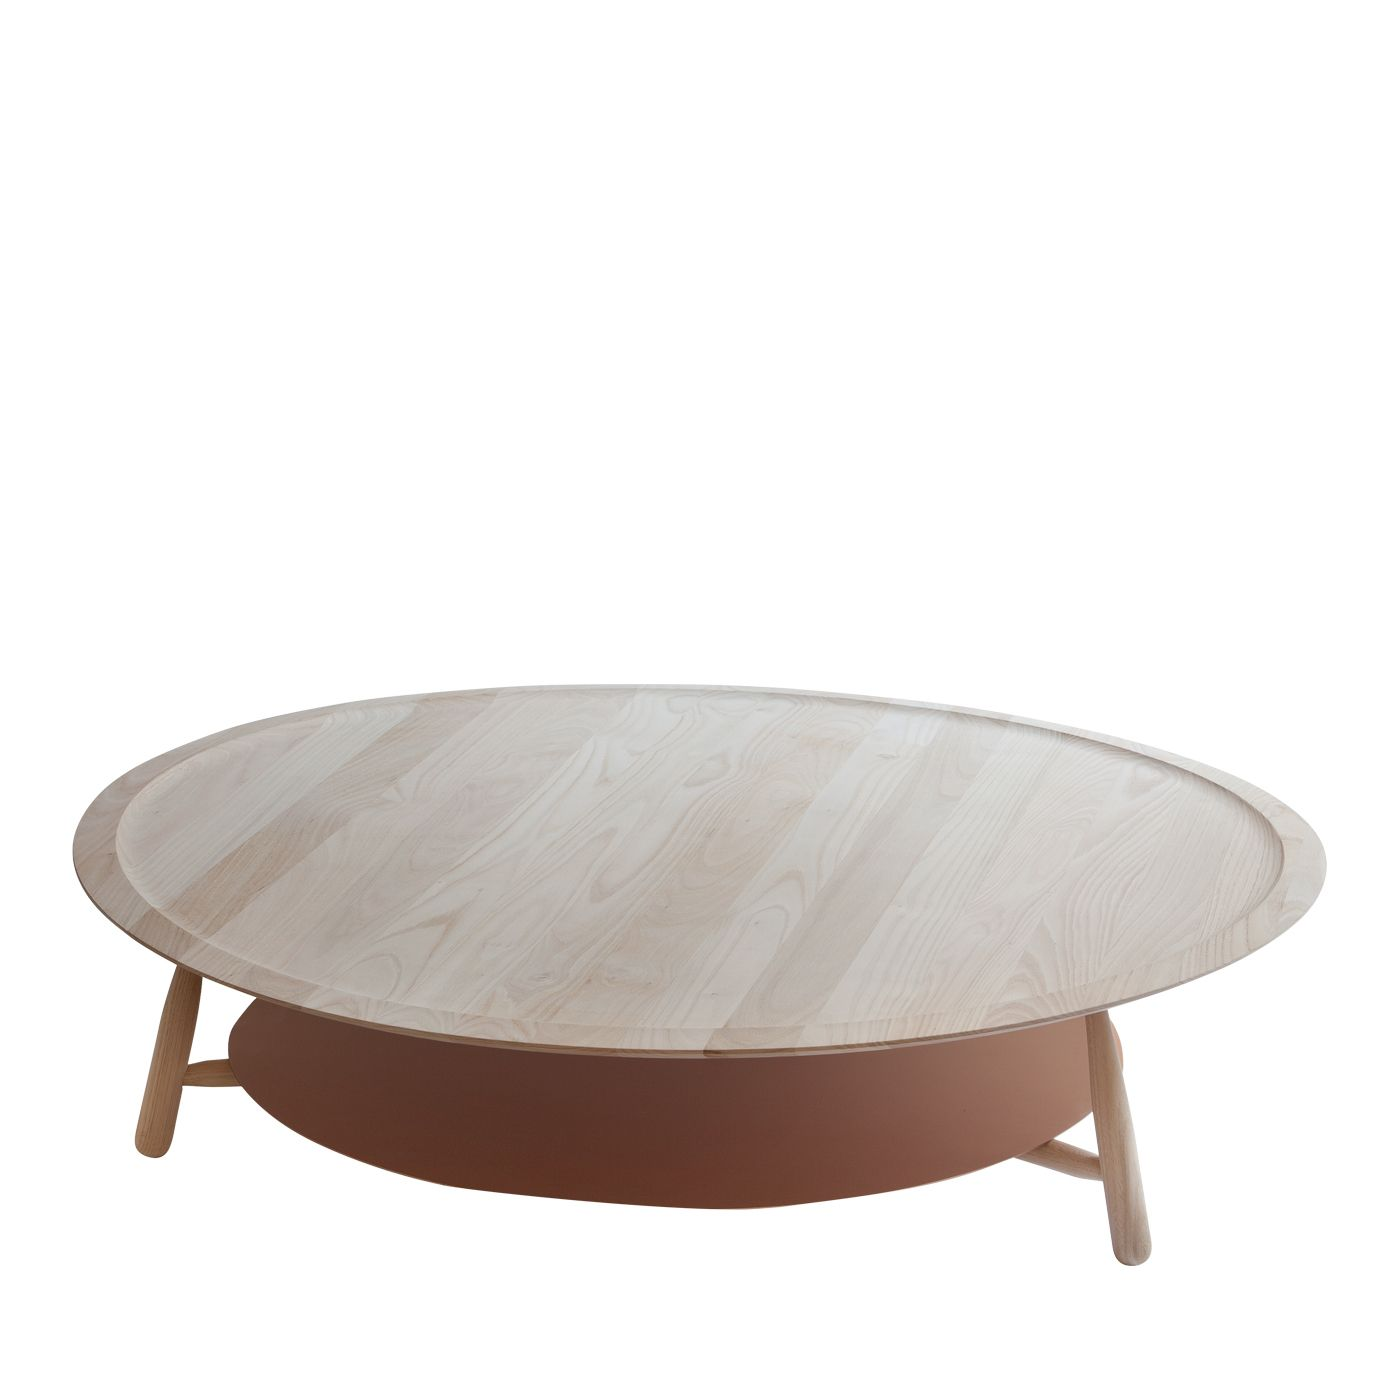 Low Marumi Coffee Table Timeless Furniture Handmade In Italy